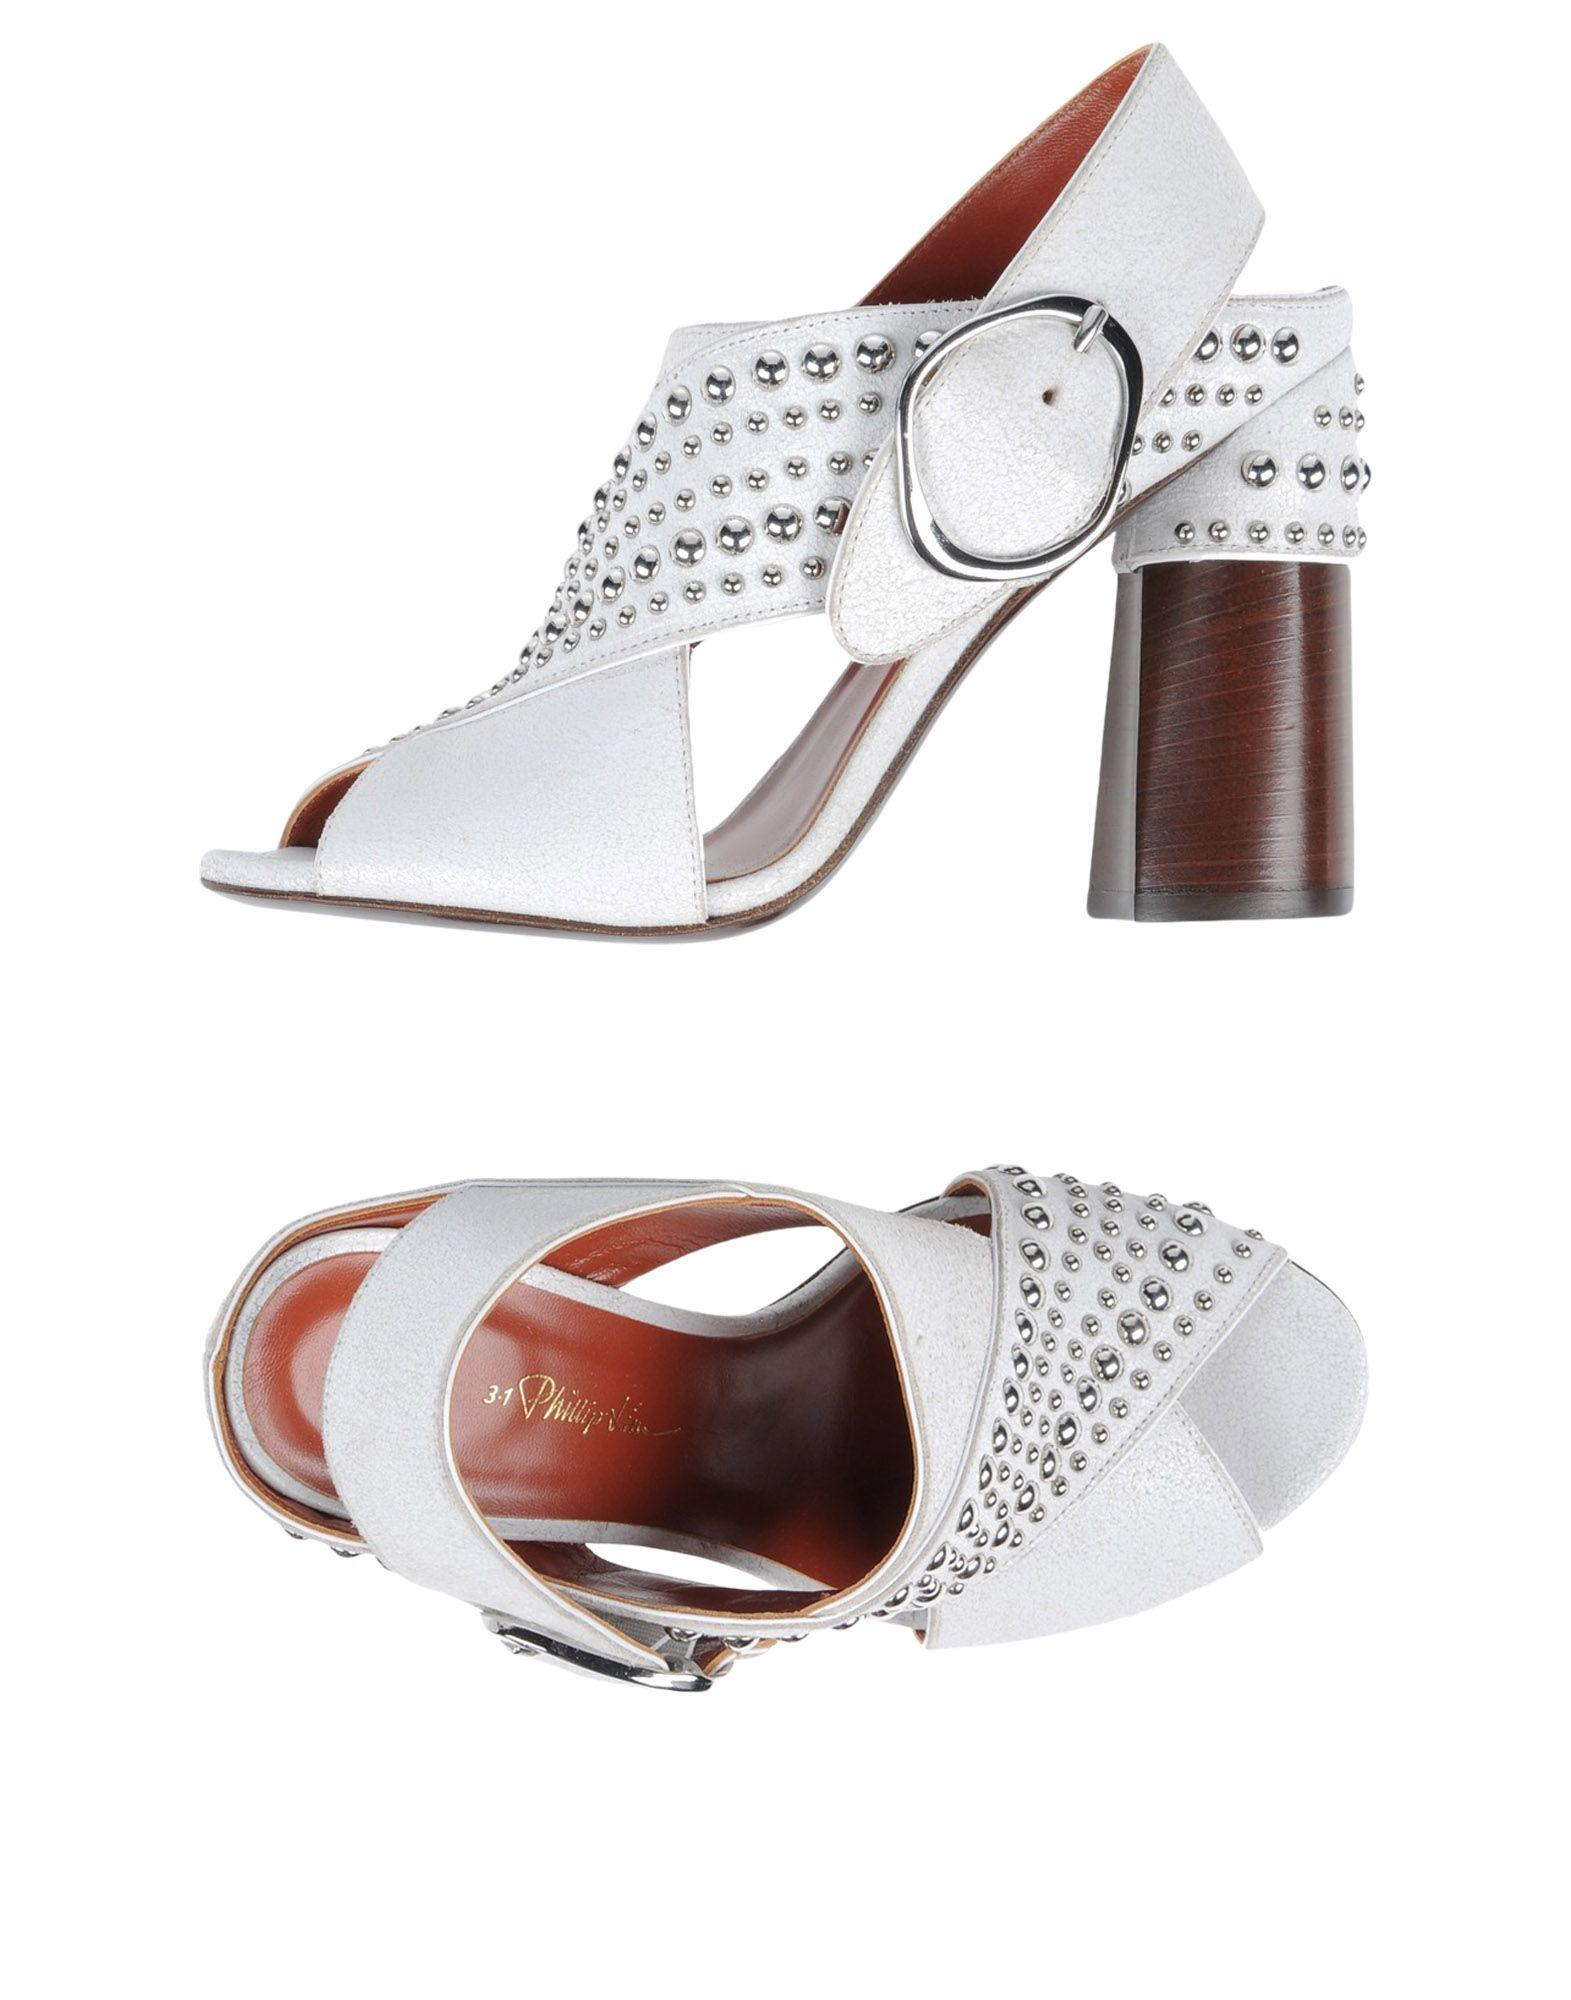 3.1 Phillip Lim Sandals In White